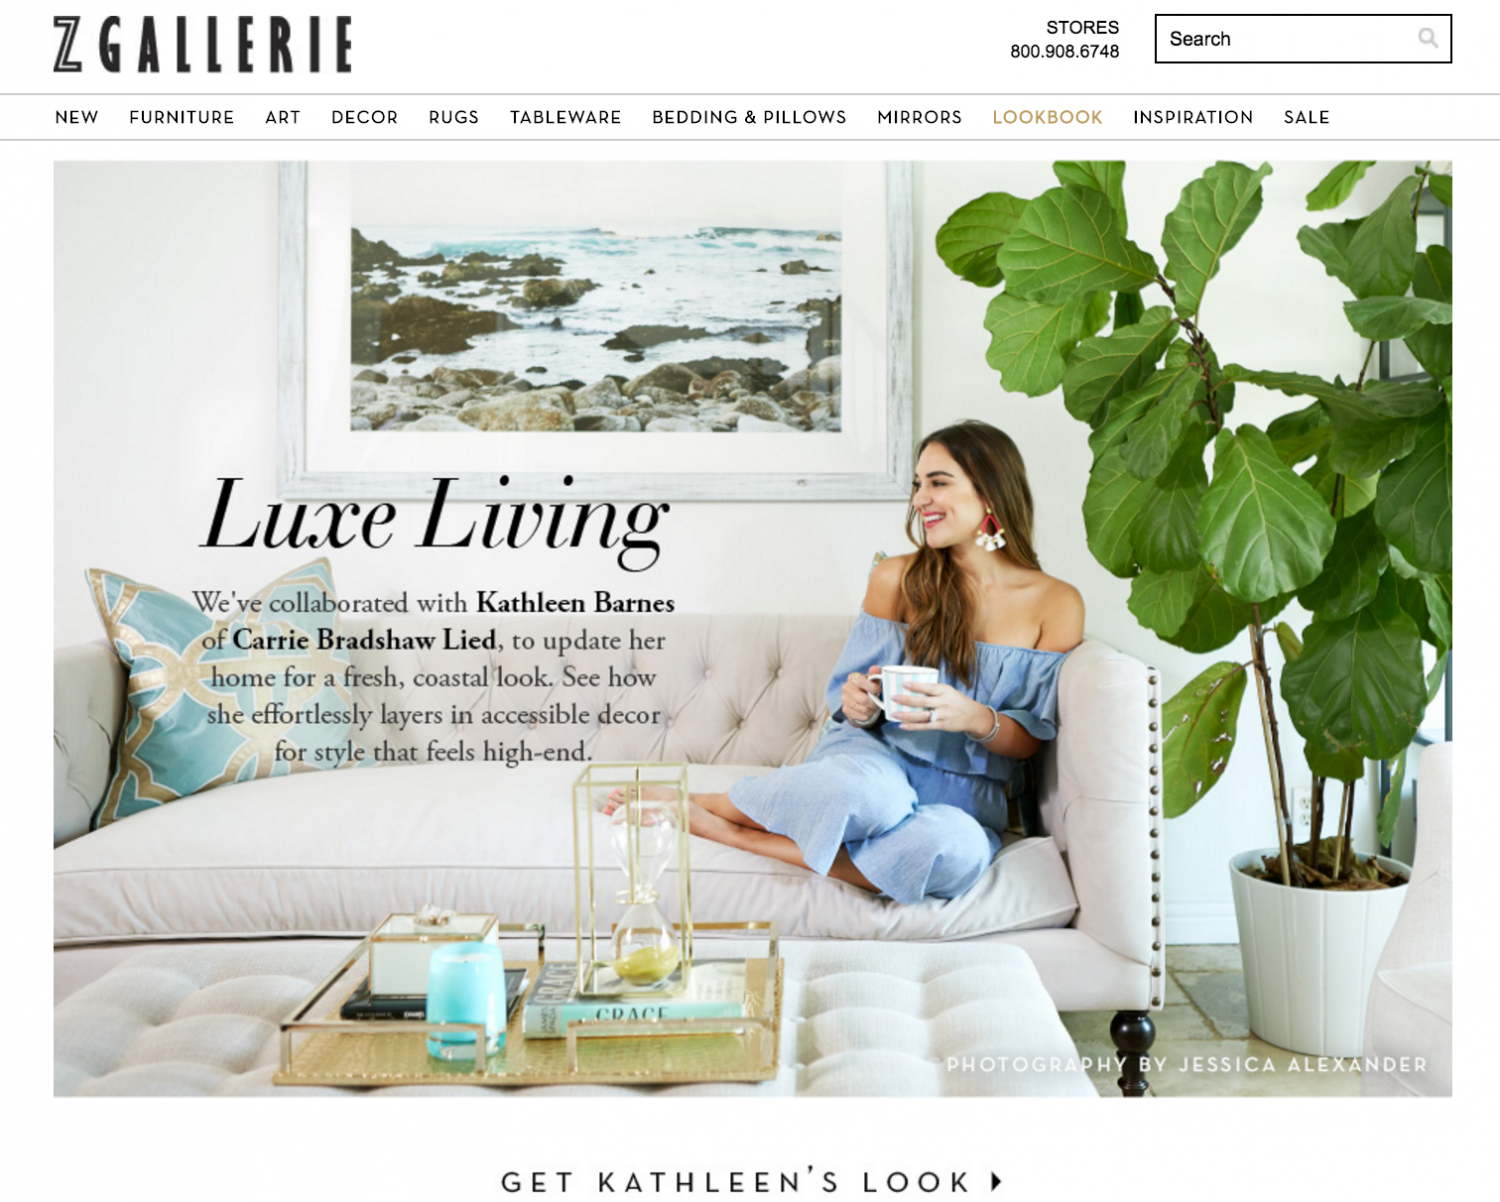 zgallerie luxe for less